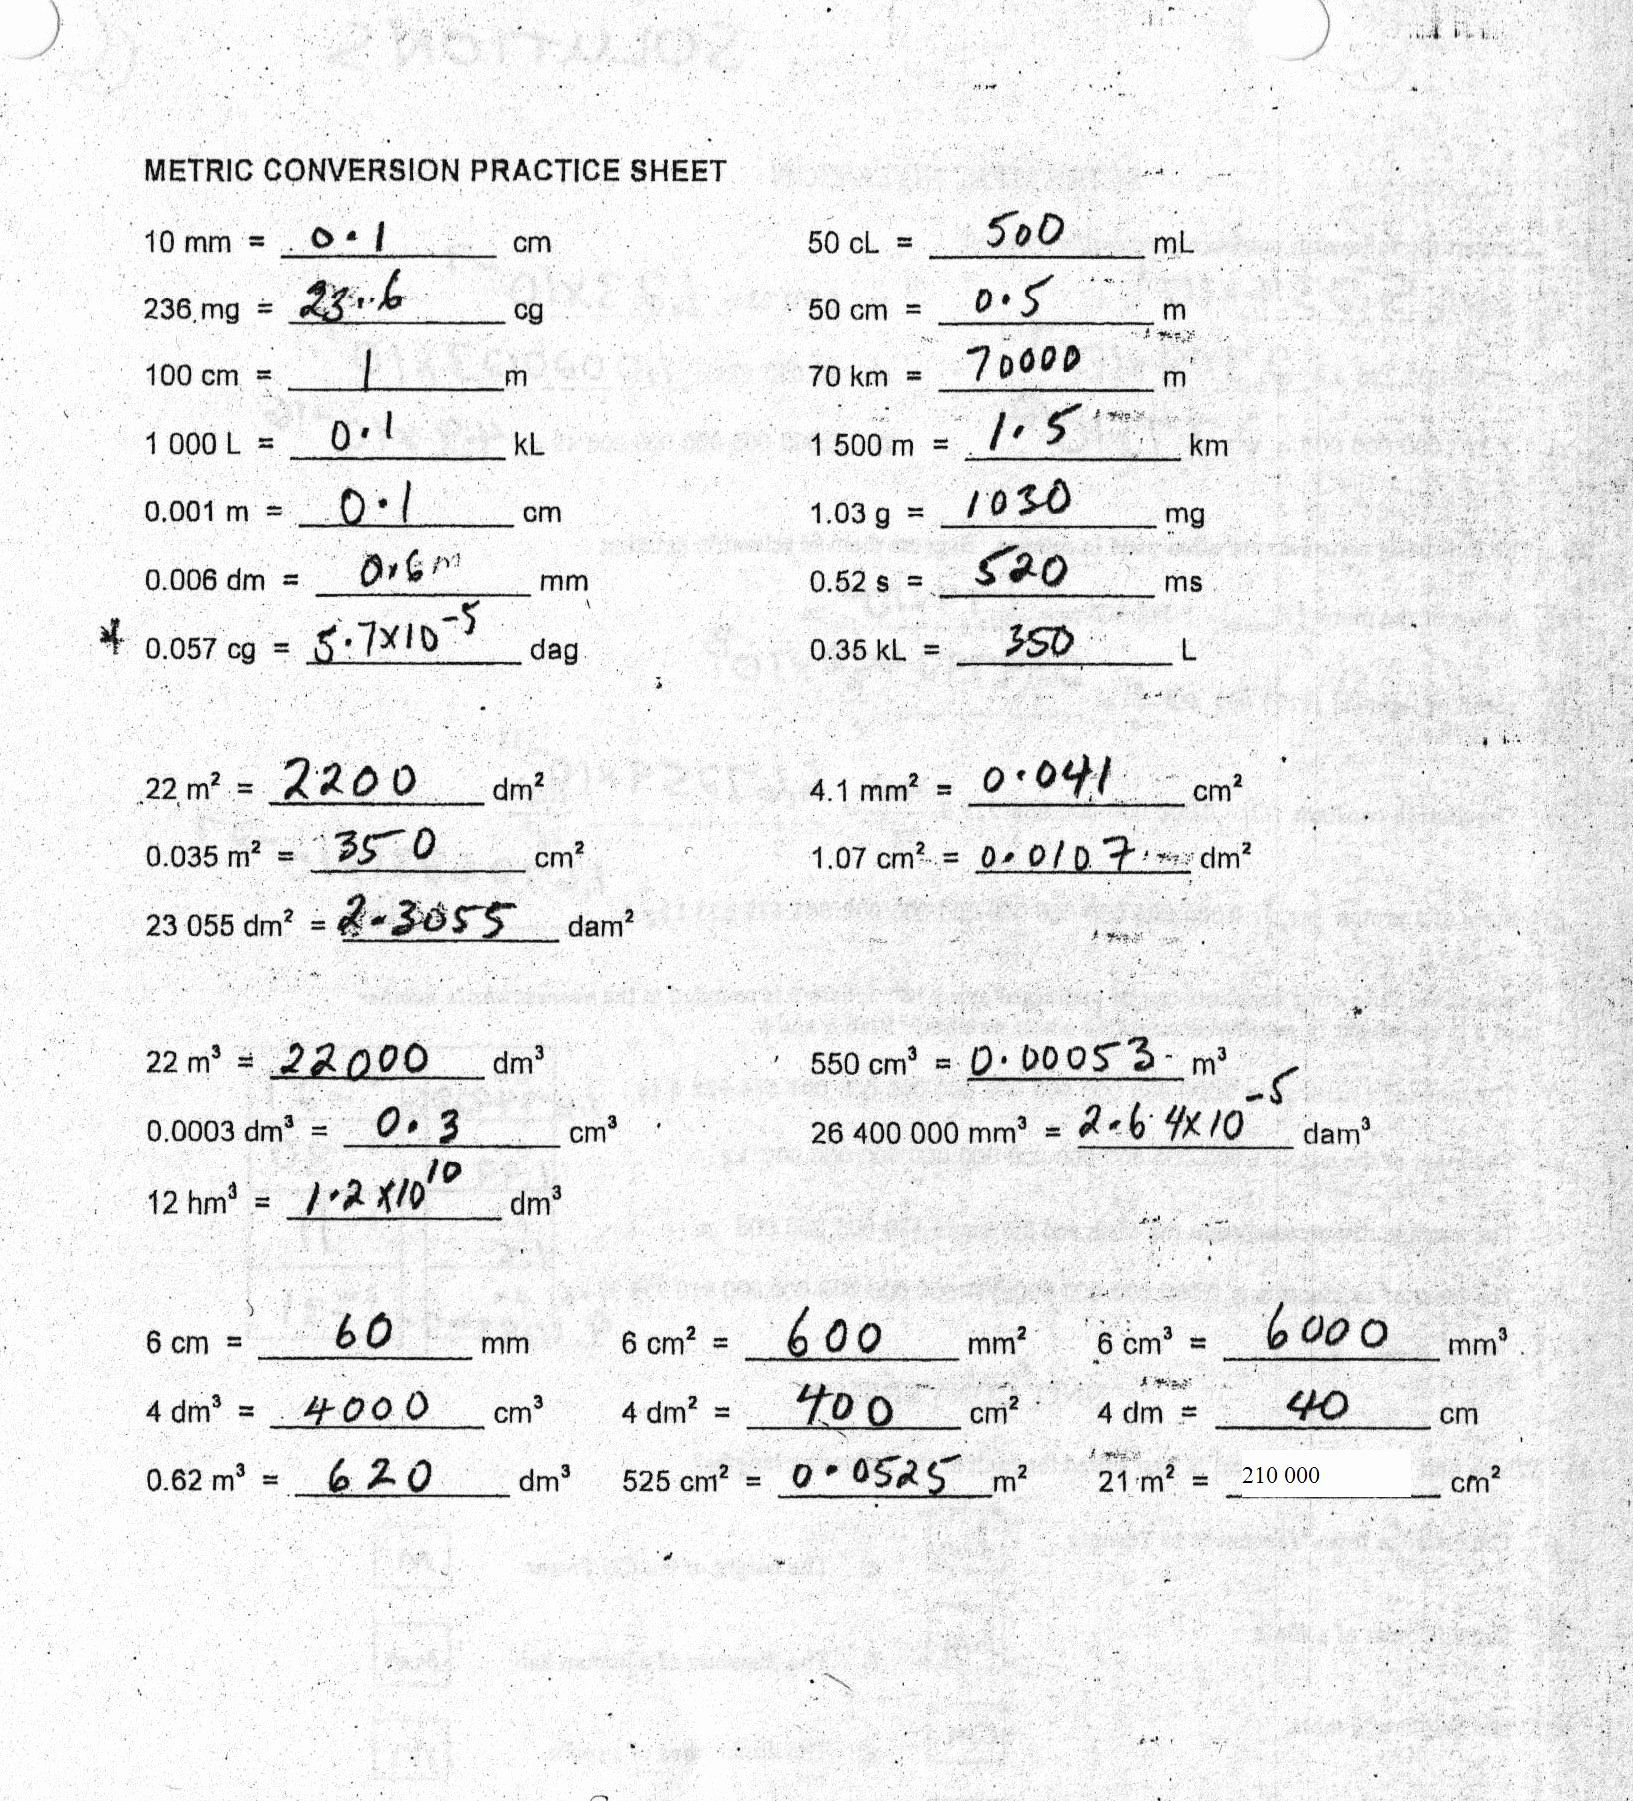 Metric Conversion Worksheet Answer Key New 10 Best Of Metric Conversion Worksheet Pdf King